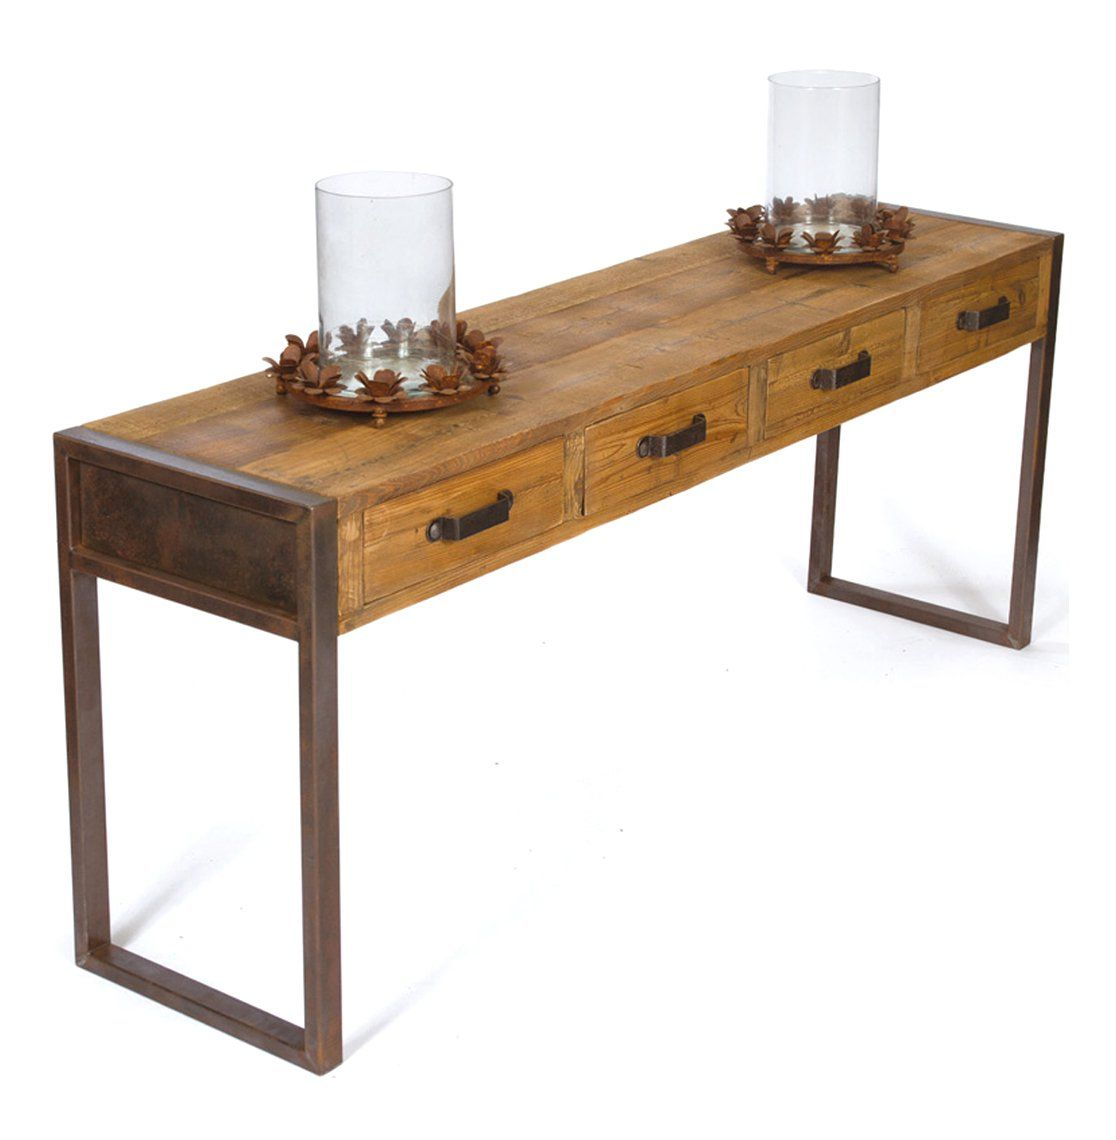 Furniture Long Console Table With Metal Base And Table Top Made From Reclaimed Wood With 4 Drawers Plus Candle Hold Muebles Rusticos Troncos De Madera Muebles